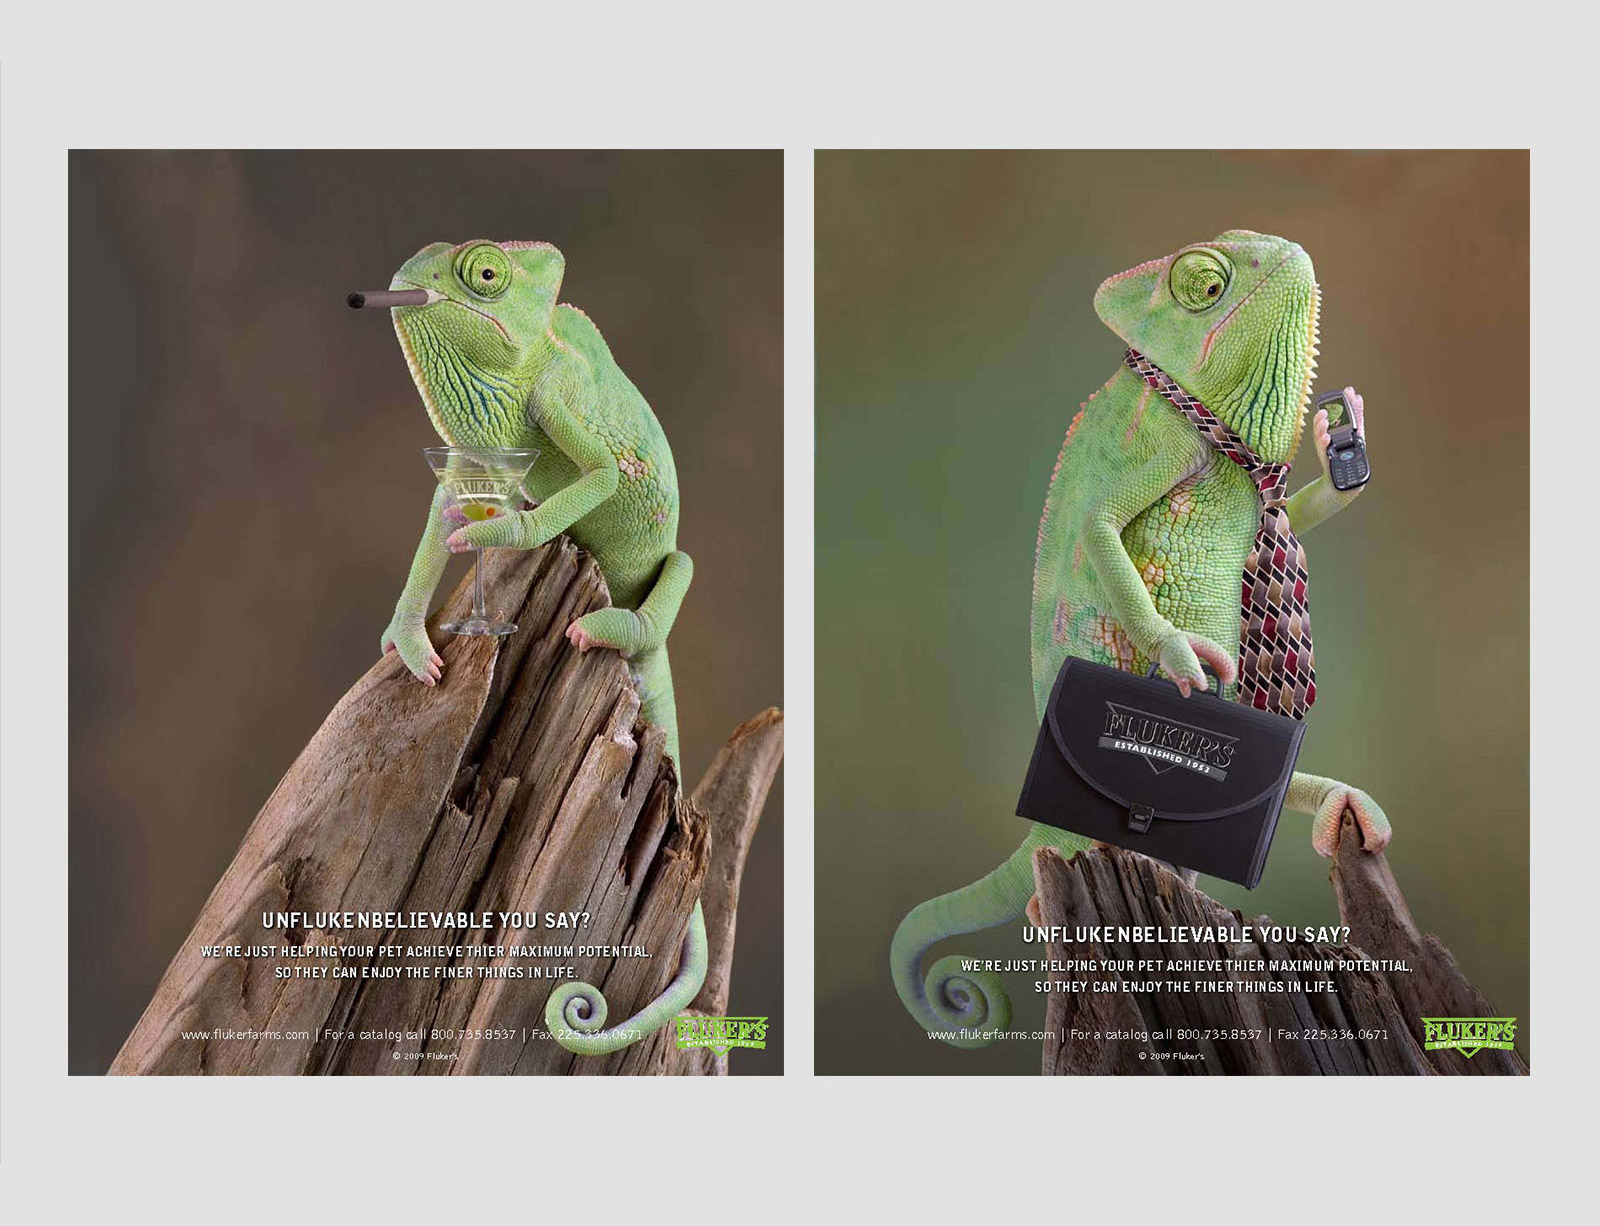 PRINT_Flukers-Panter-Chameleon-Ads1.jpg